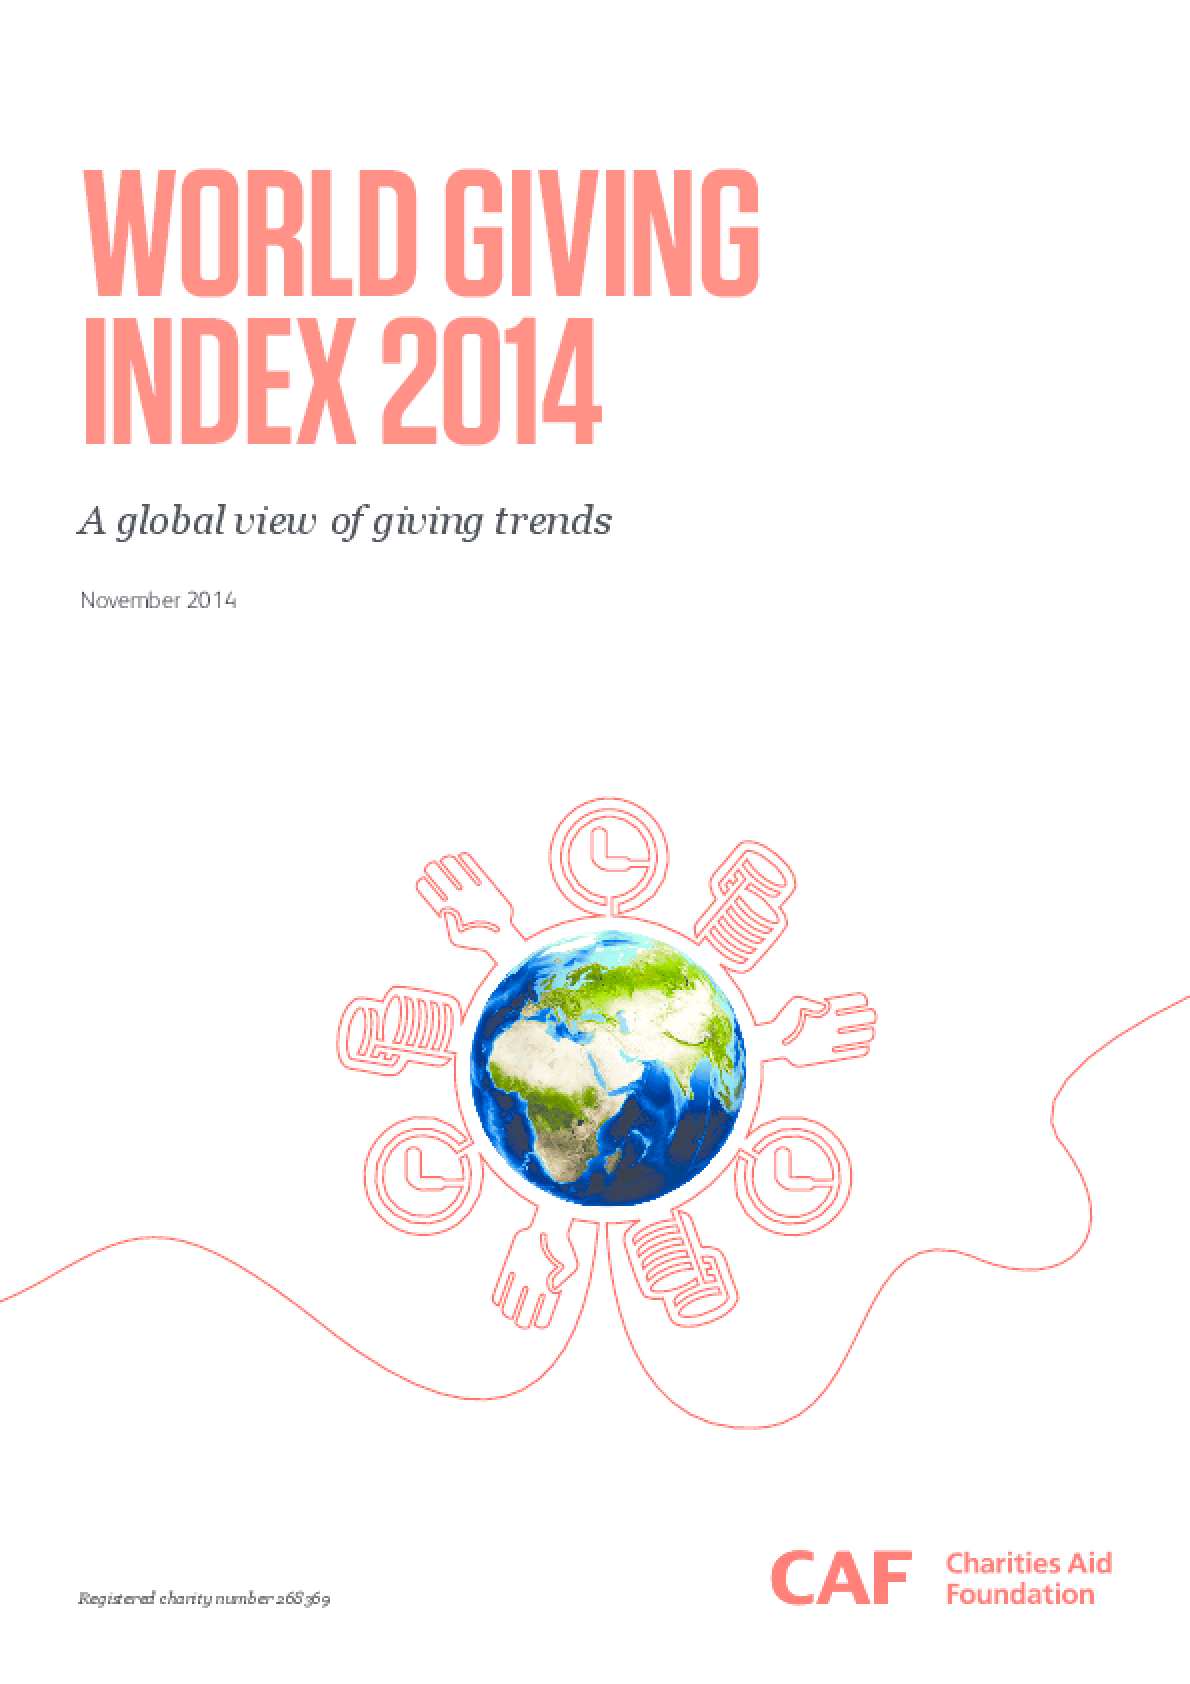 World Giving Index 2014: A Global View of Giving Trends